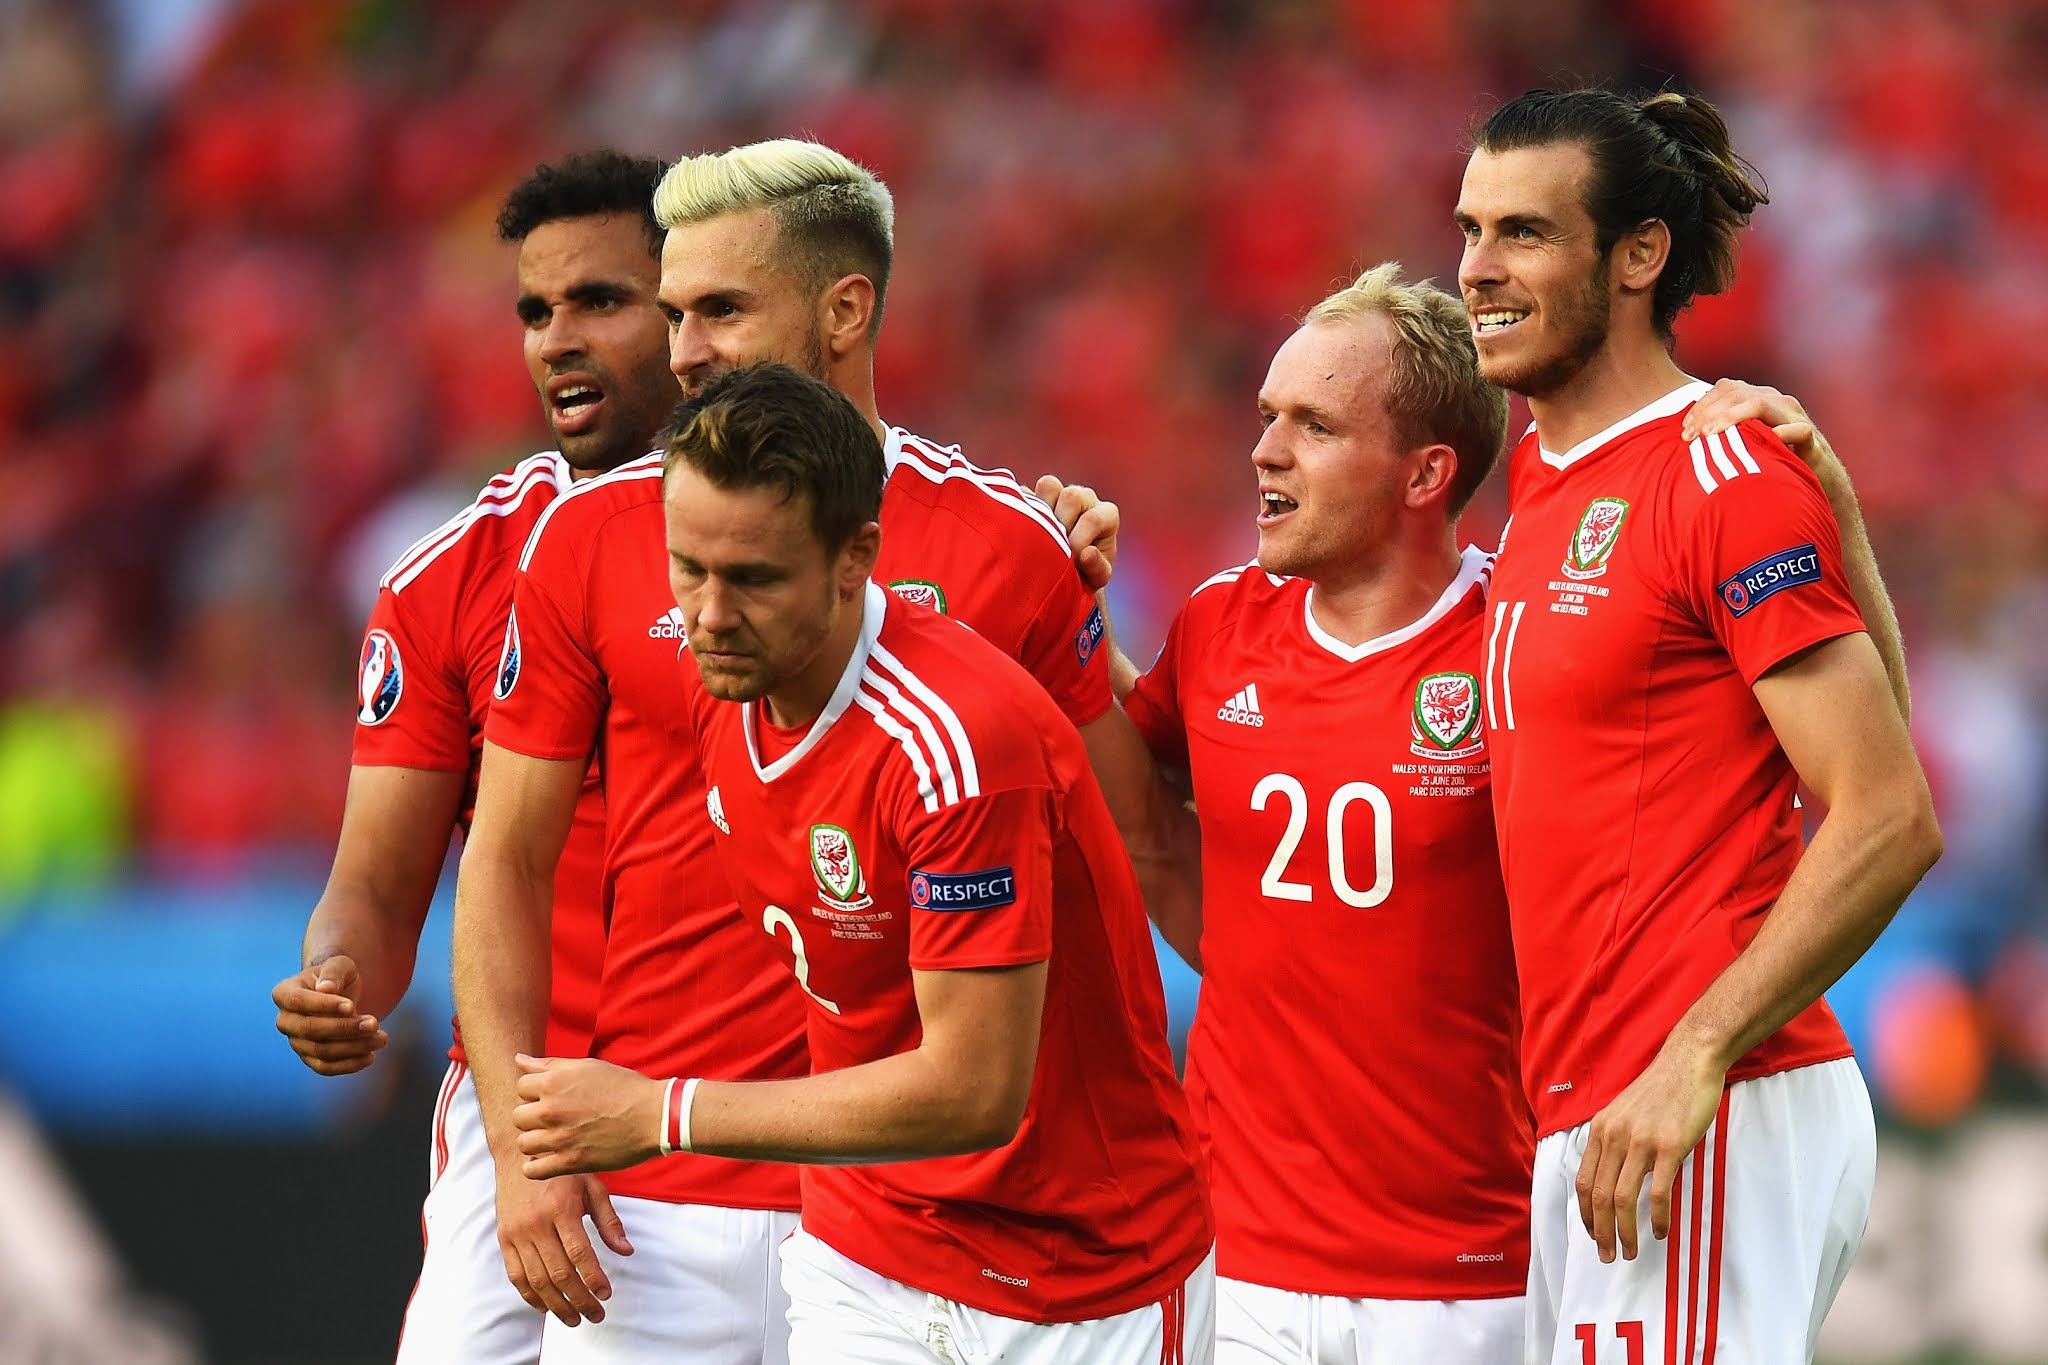 Wales lock horns with Switzerland in Saturday's early kick off